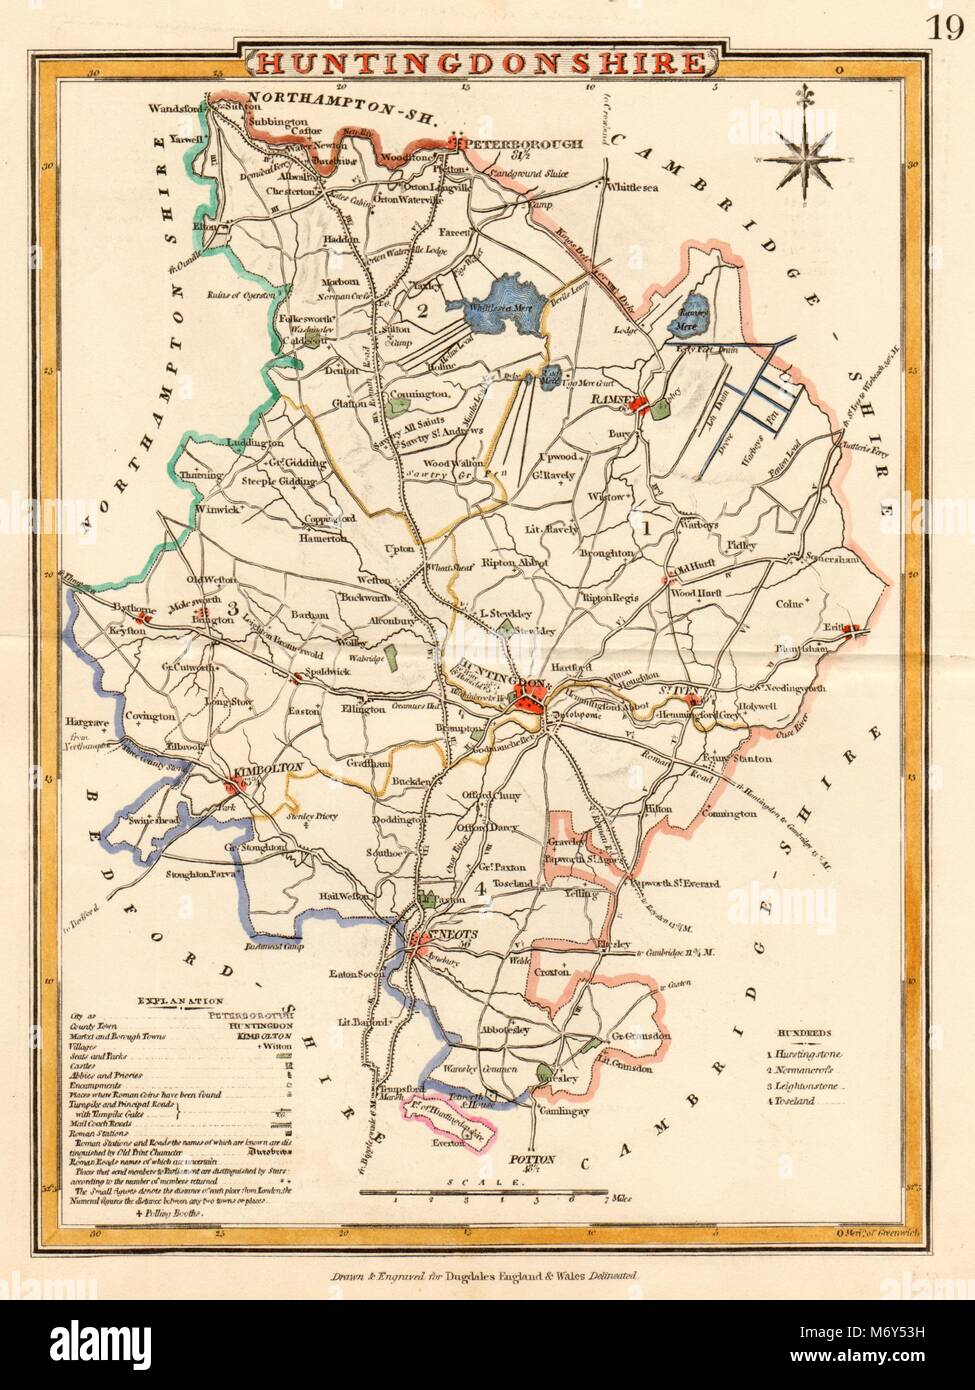 Helpful Antique County Map Of Huntingdonshire By John Cary Antiques Kimbolton St Neots 1793